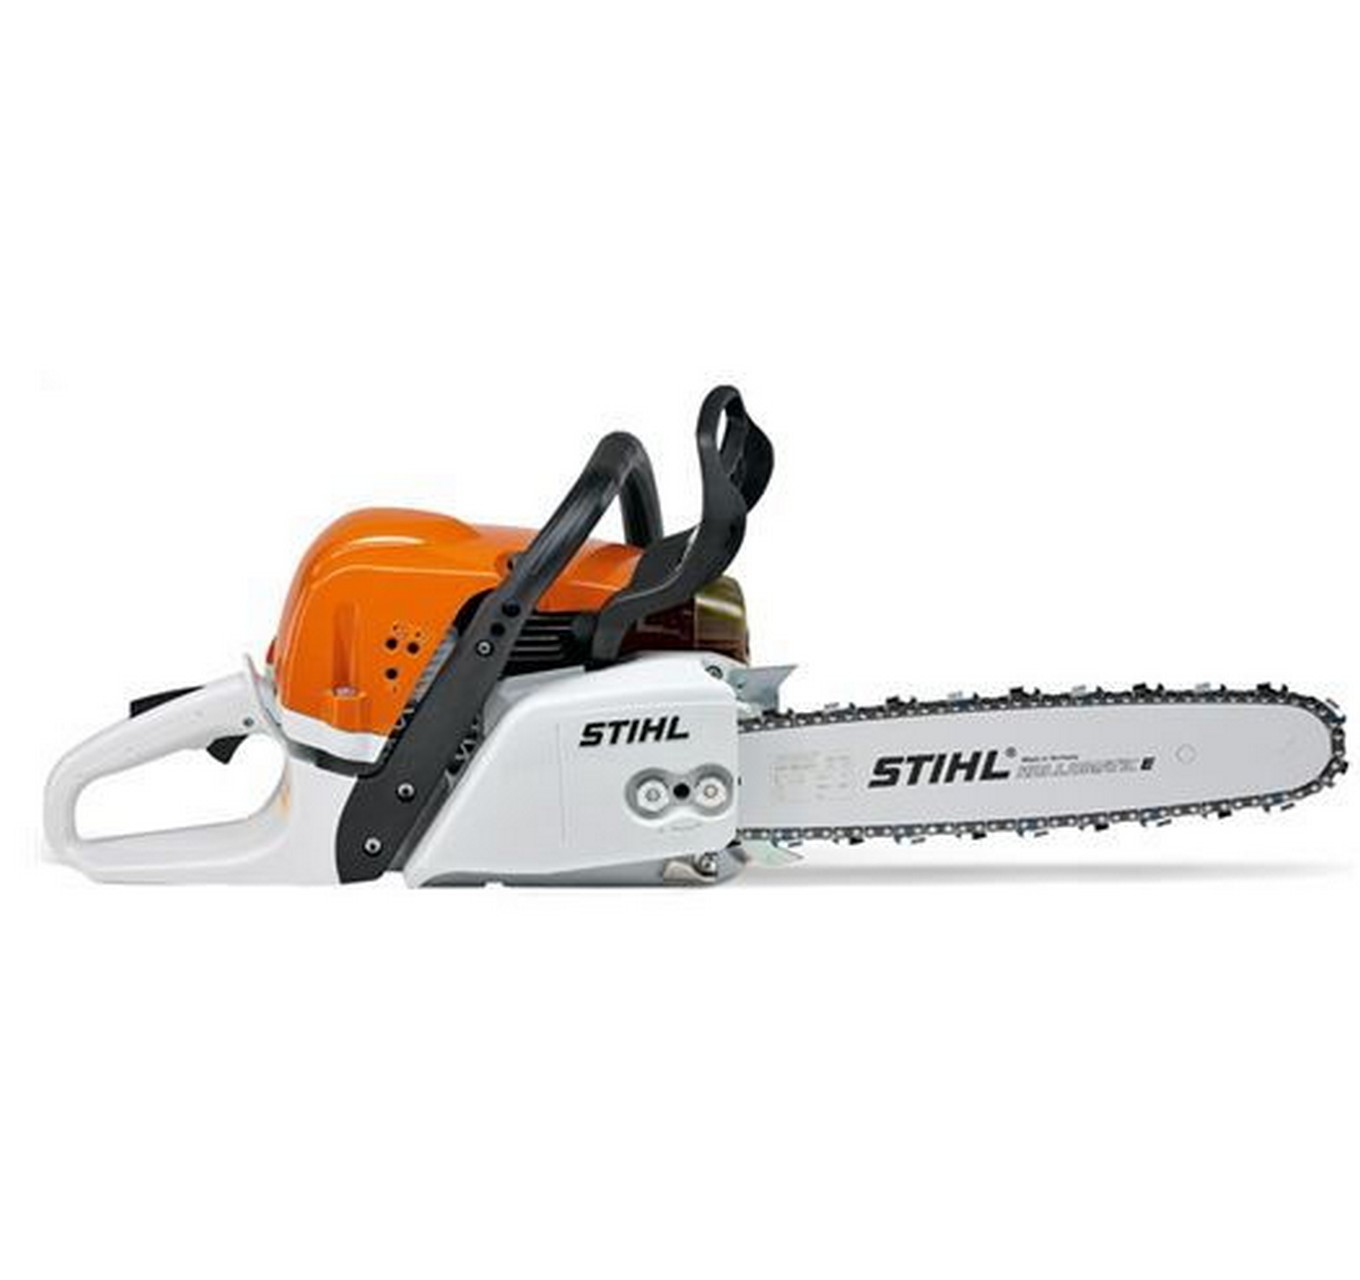 MS 391 Chainsaw 18